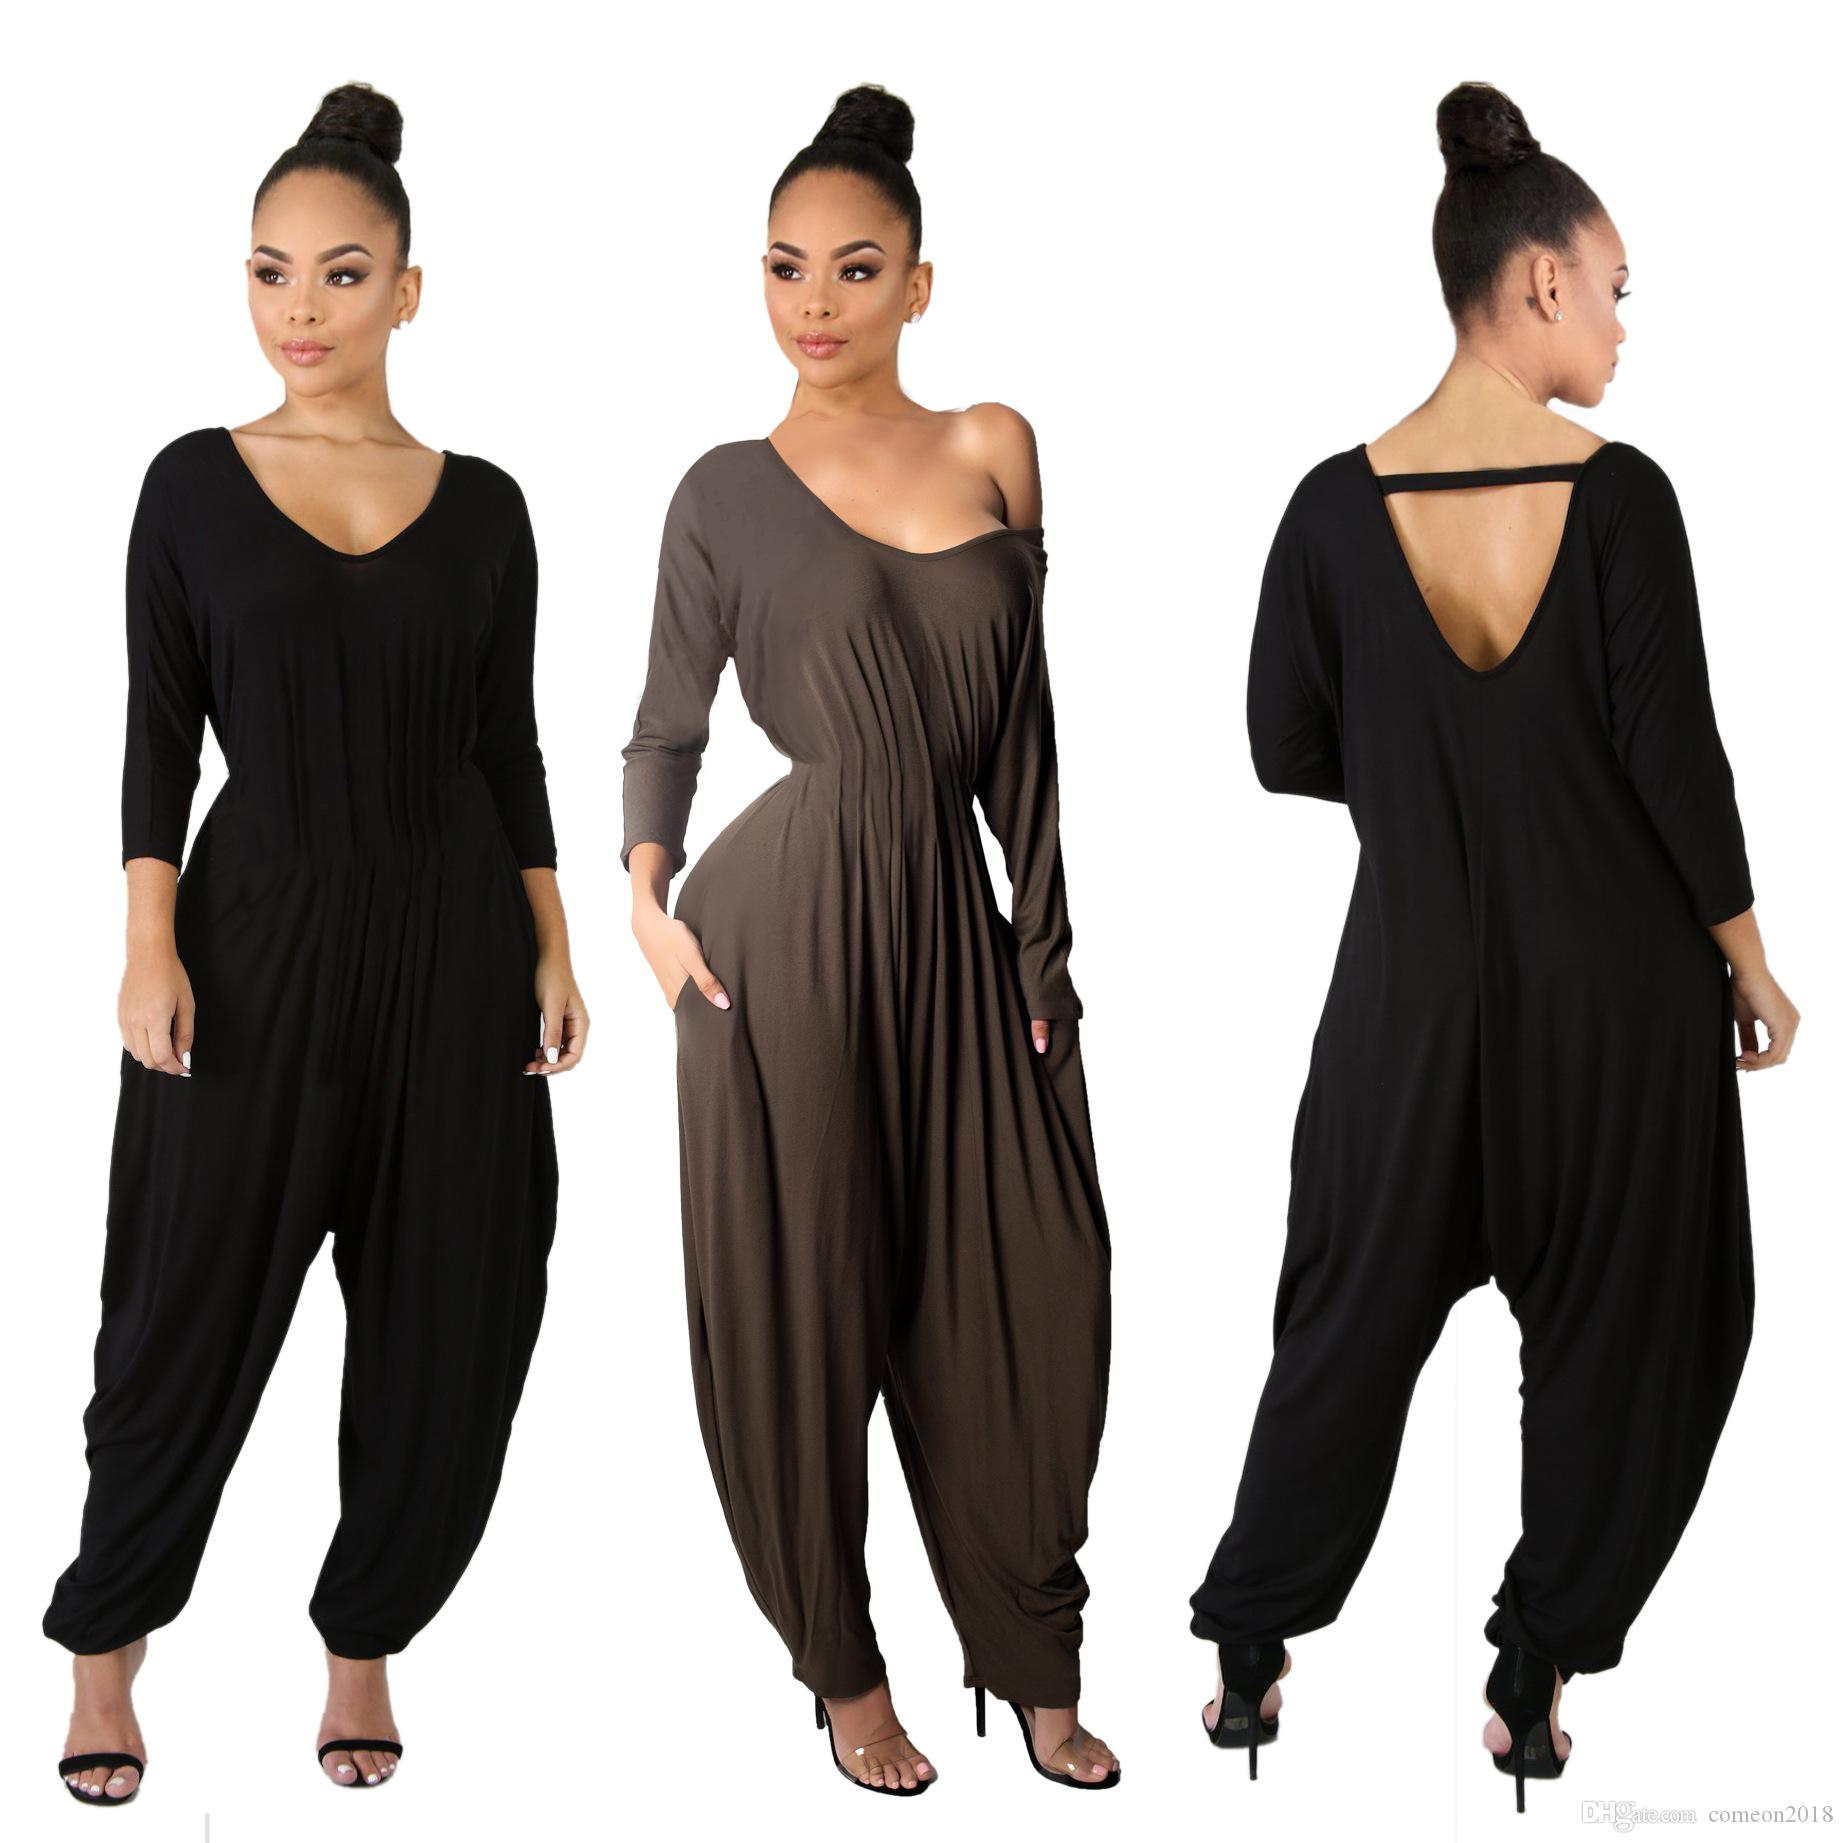 65c4310a6f83 2019 Designer Women Clothes Women Jumpsuits Off Shoulder Bodysuits Lantern Pants  Long Sleeve Rompers Overalls Women Full Length Black Playsuit From ...